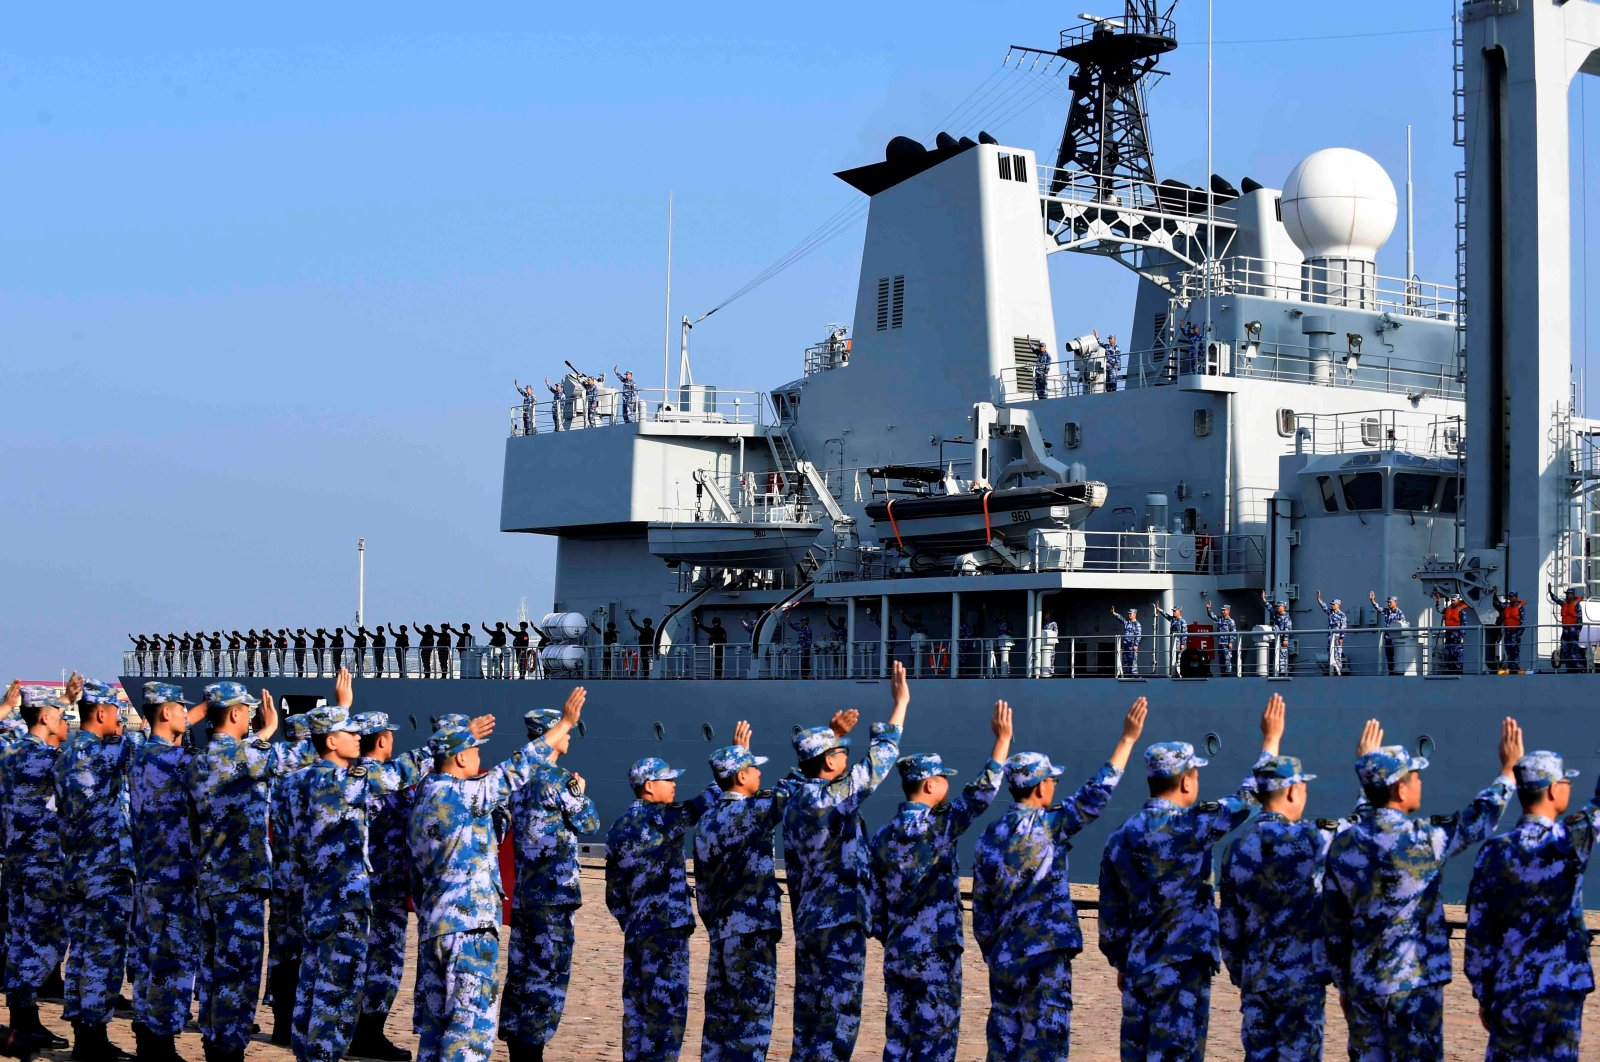 Soldiers of the Chinese People's Liberation Army (PLA) Navy take part in a ceremony at a naval port in Qingdao, Shandong province, China, Sept. 3, 2020. (REUTERS Photo)